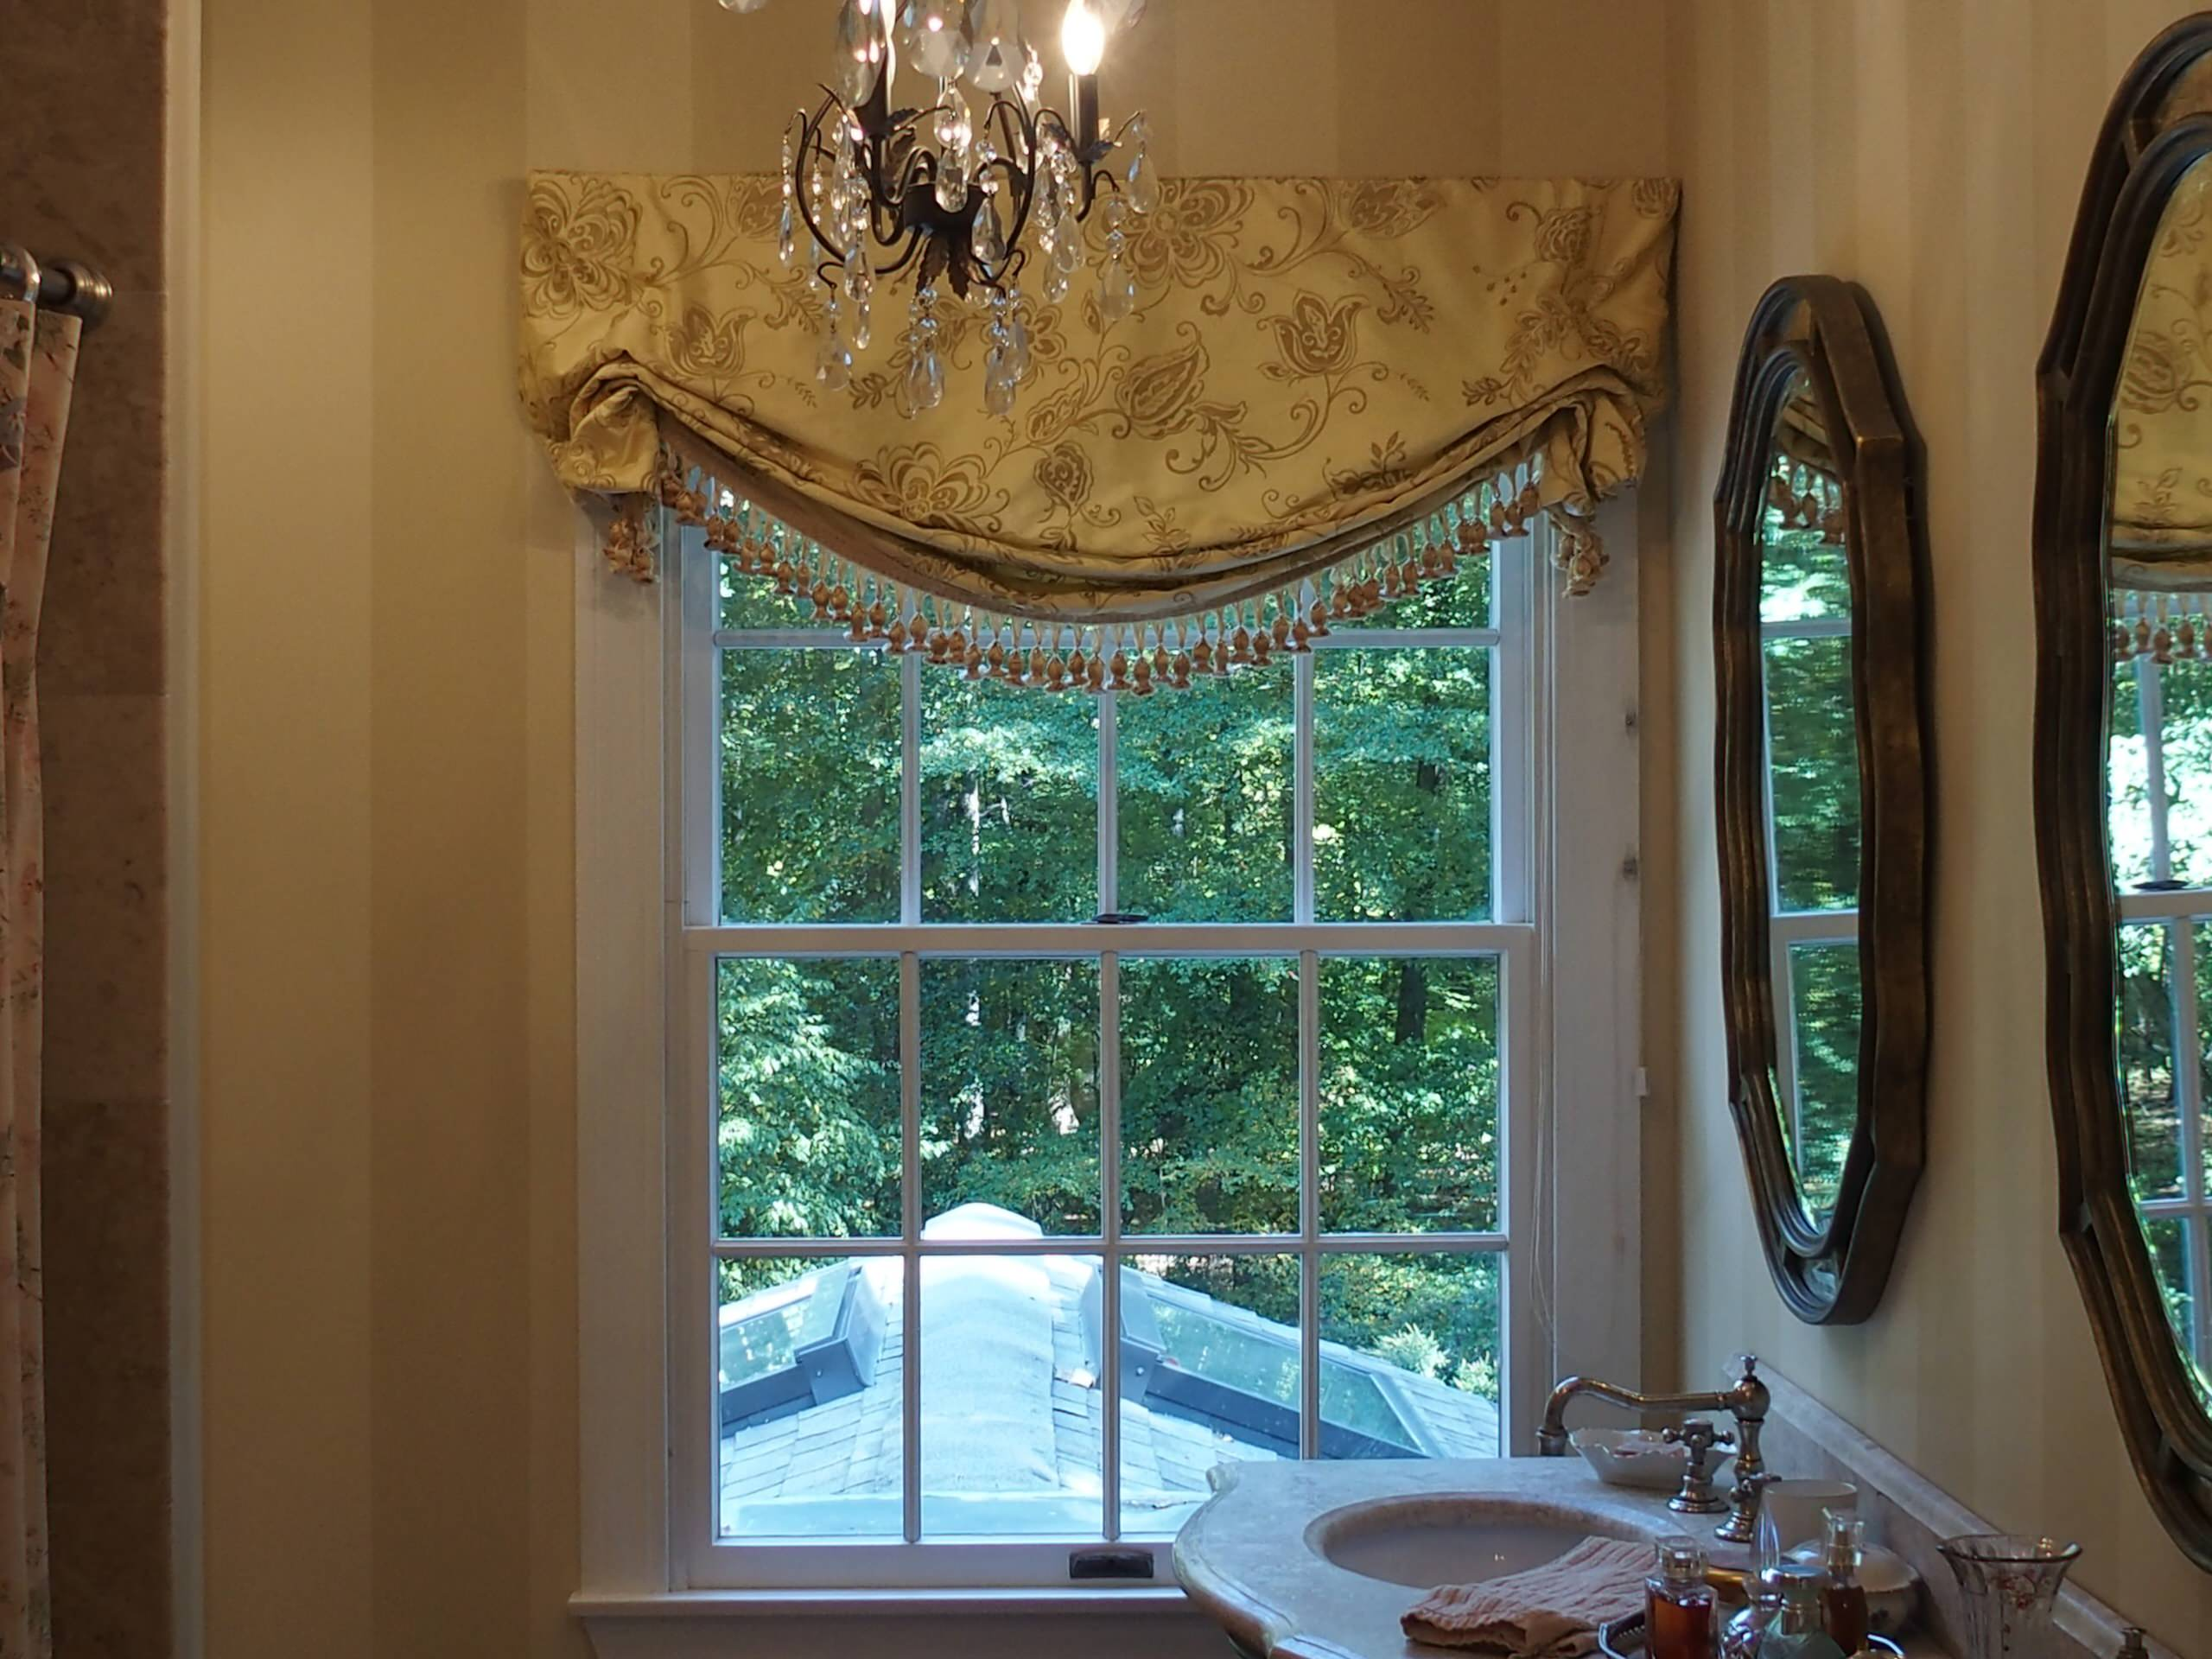 Window Treatments for Bathroom WIndows